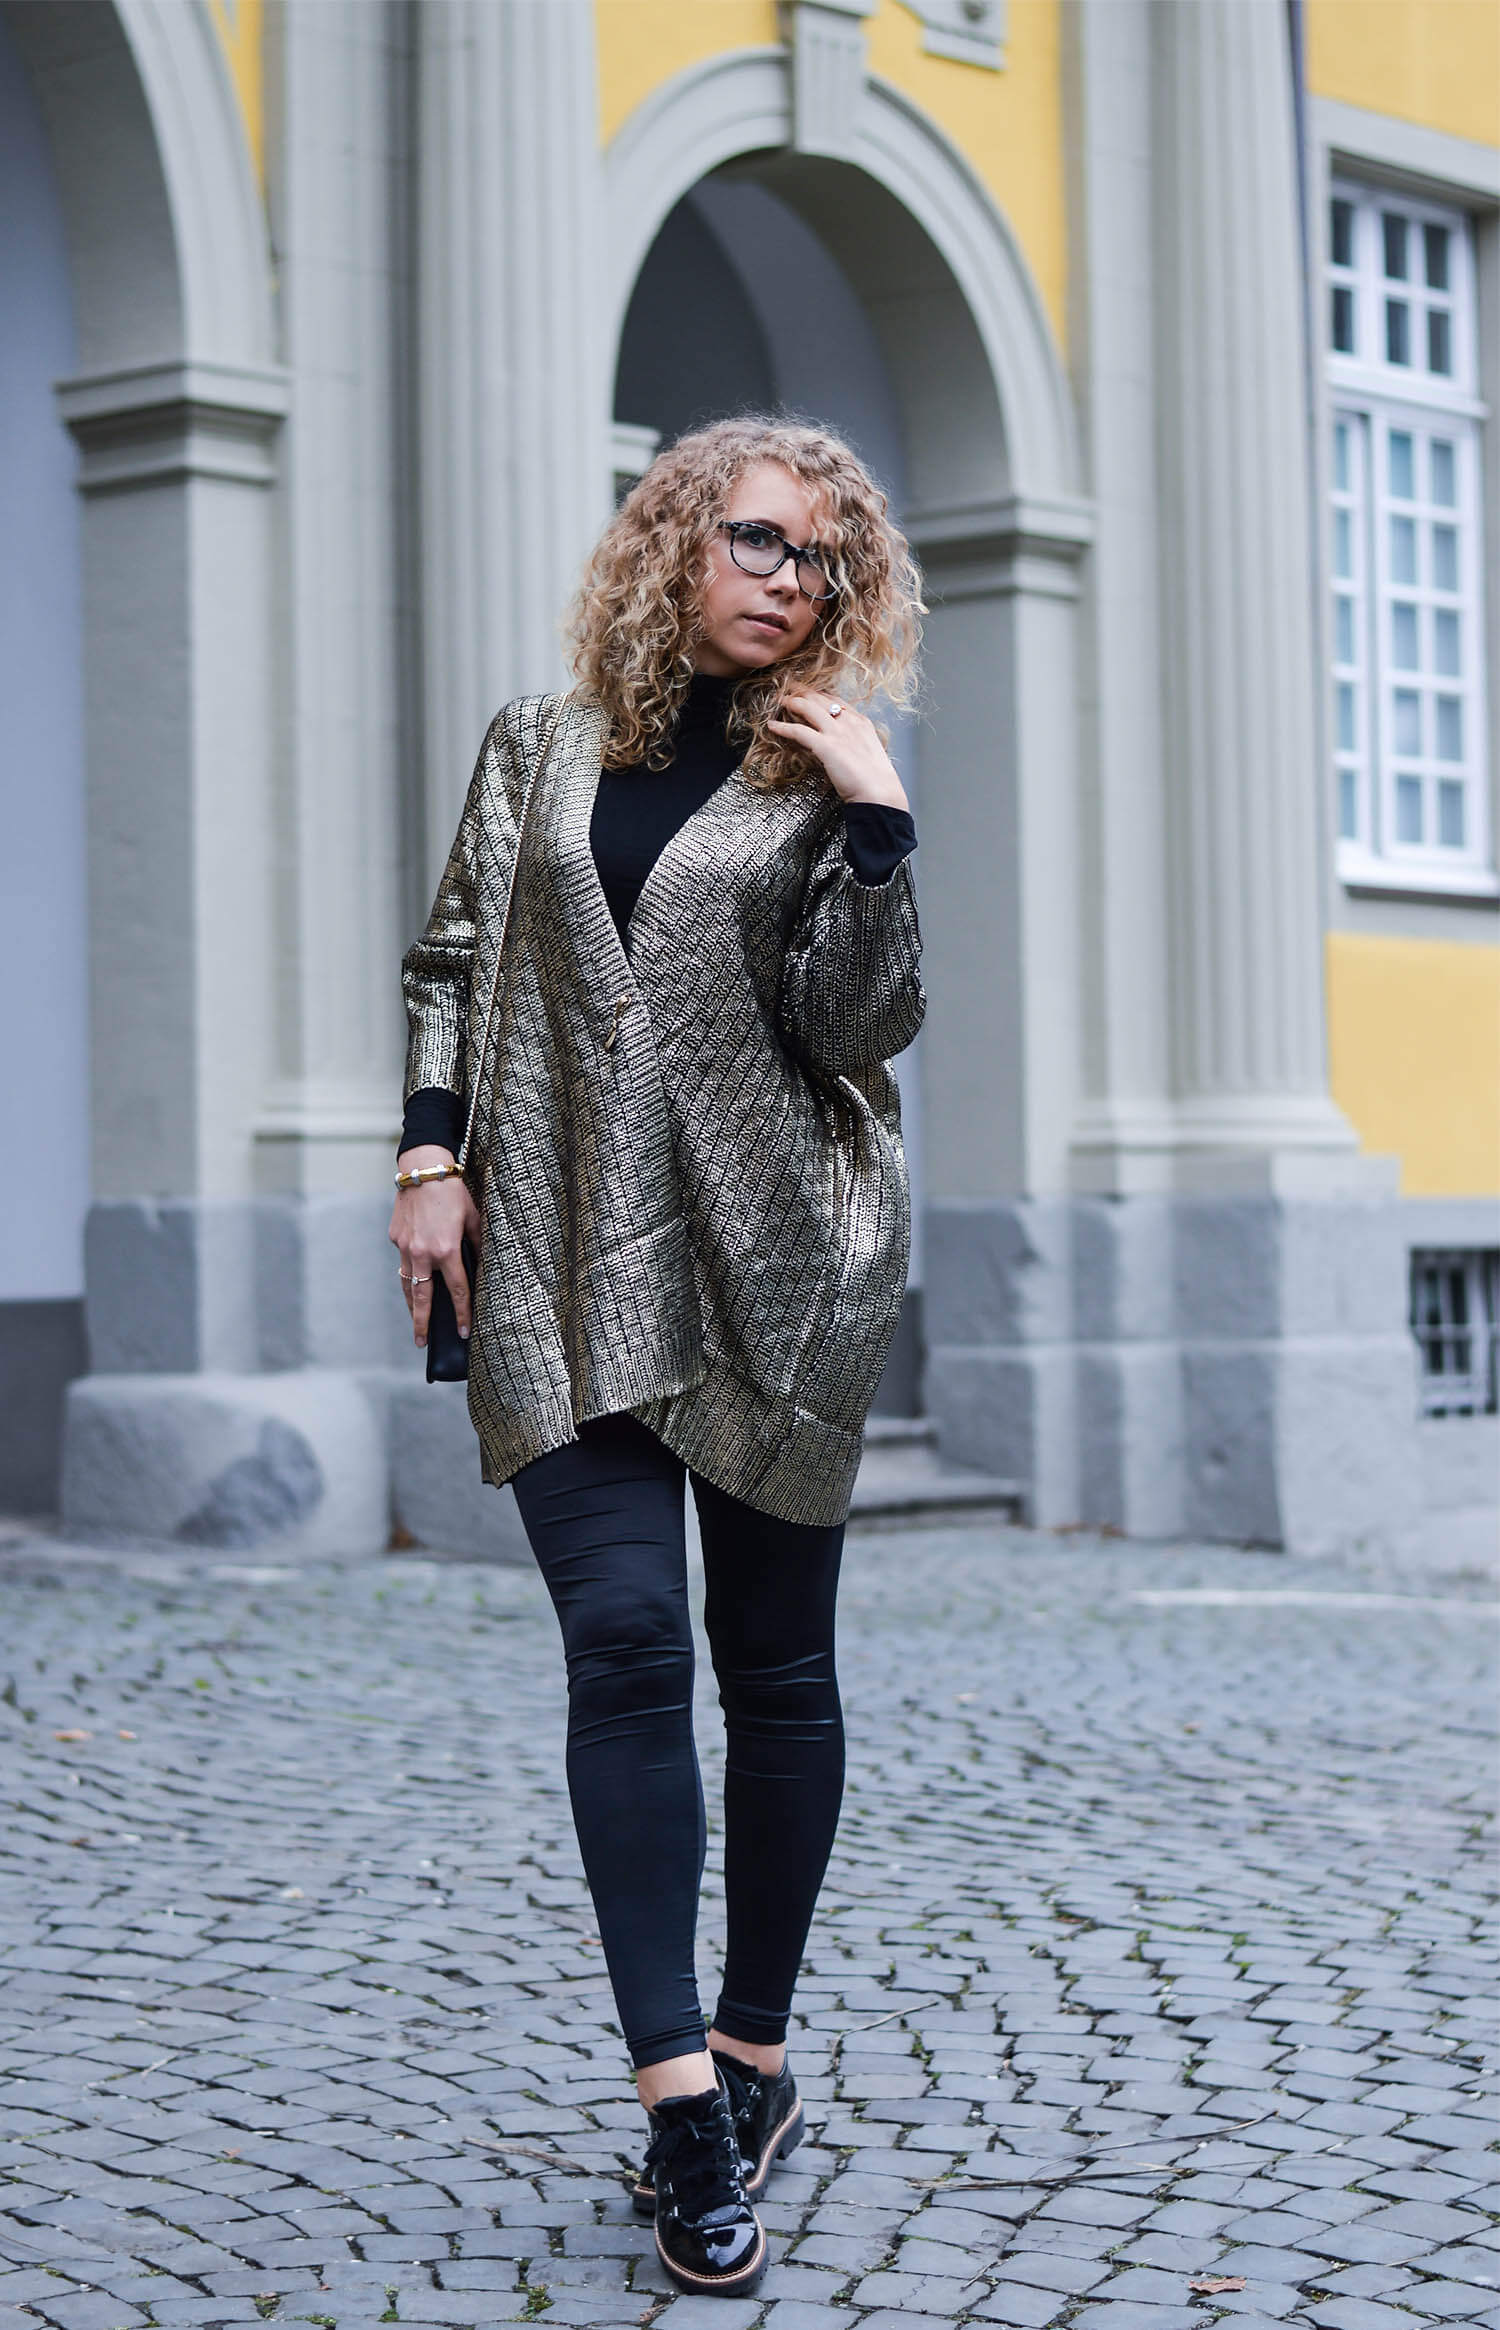 Outfit: Golden metallic knit and patent shoes in mountaineering look